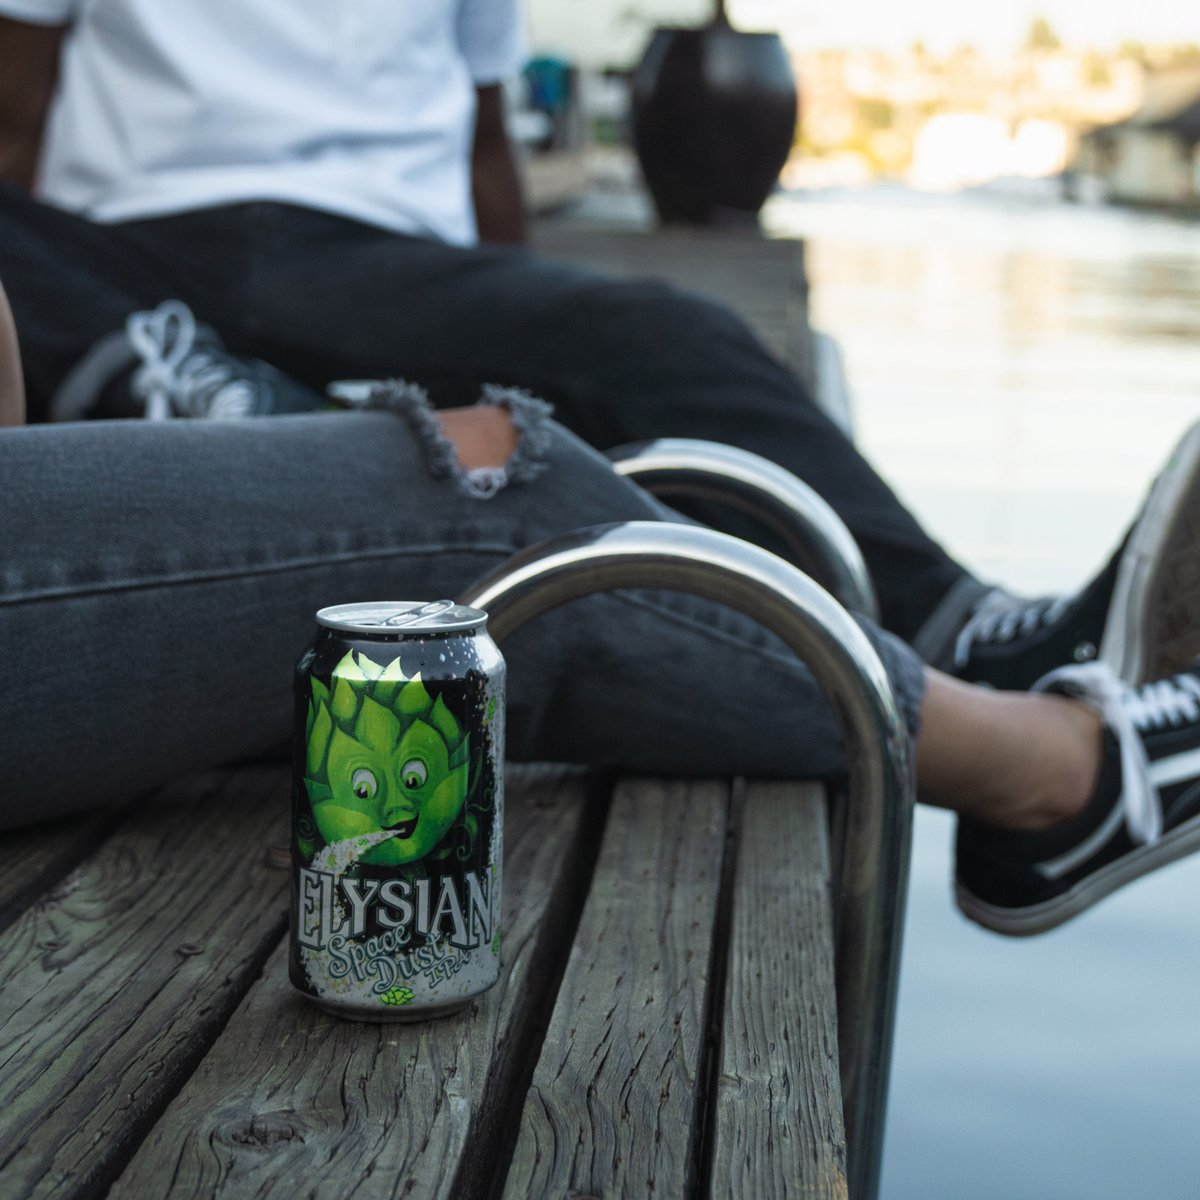 Crack open a balanced Space Dust citrus-forward IPA that's easy to drink, no matter where you're kicking back. #Elysian #SpaceDust #IPA #CraftBeer #BetterBrands #MyrtleBeach https://t.co/AUc414zKNO